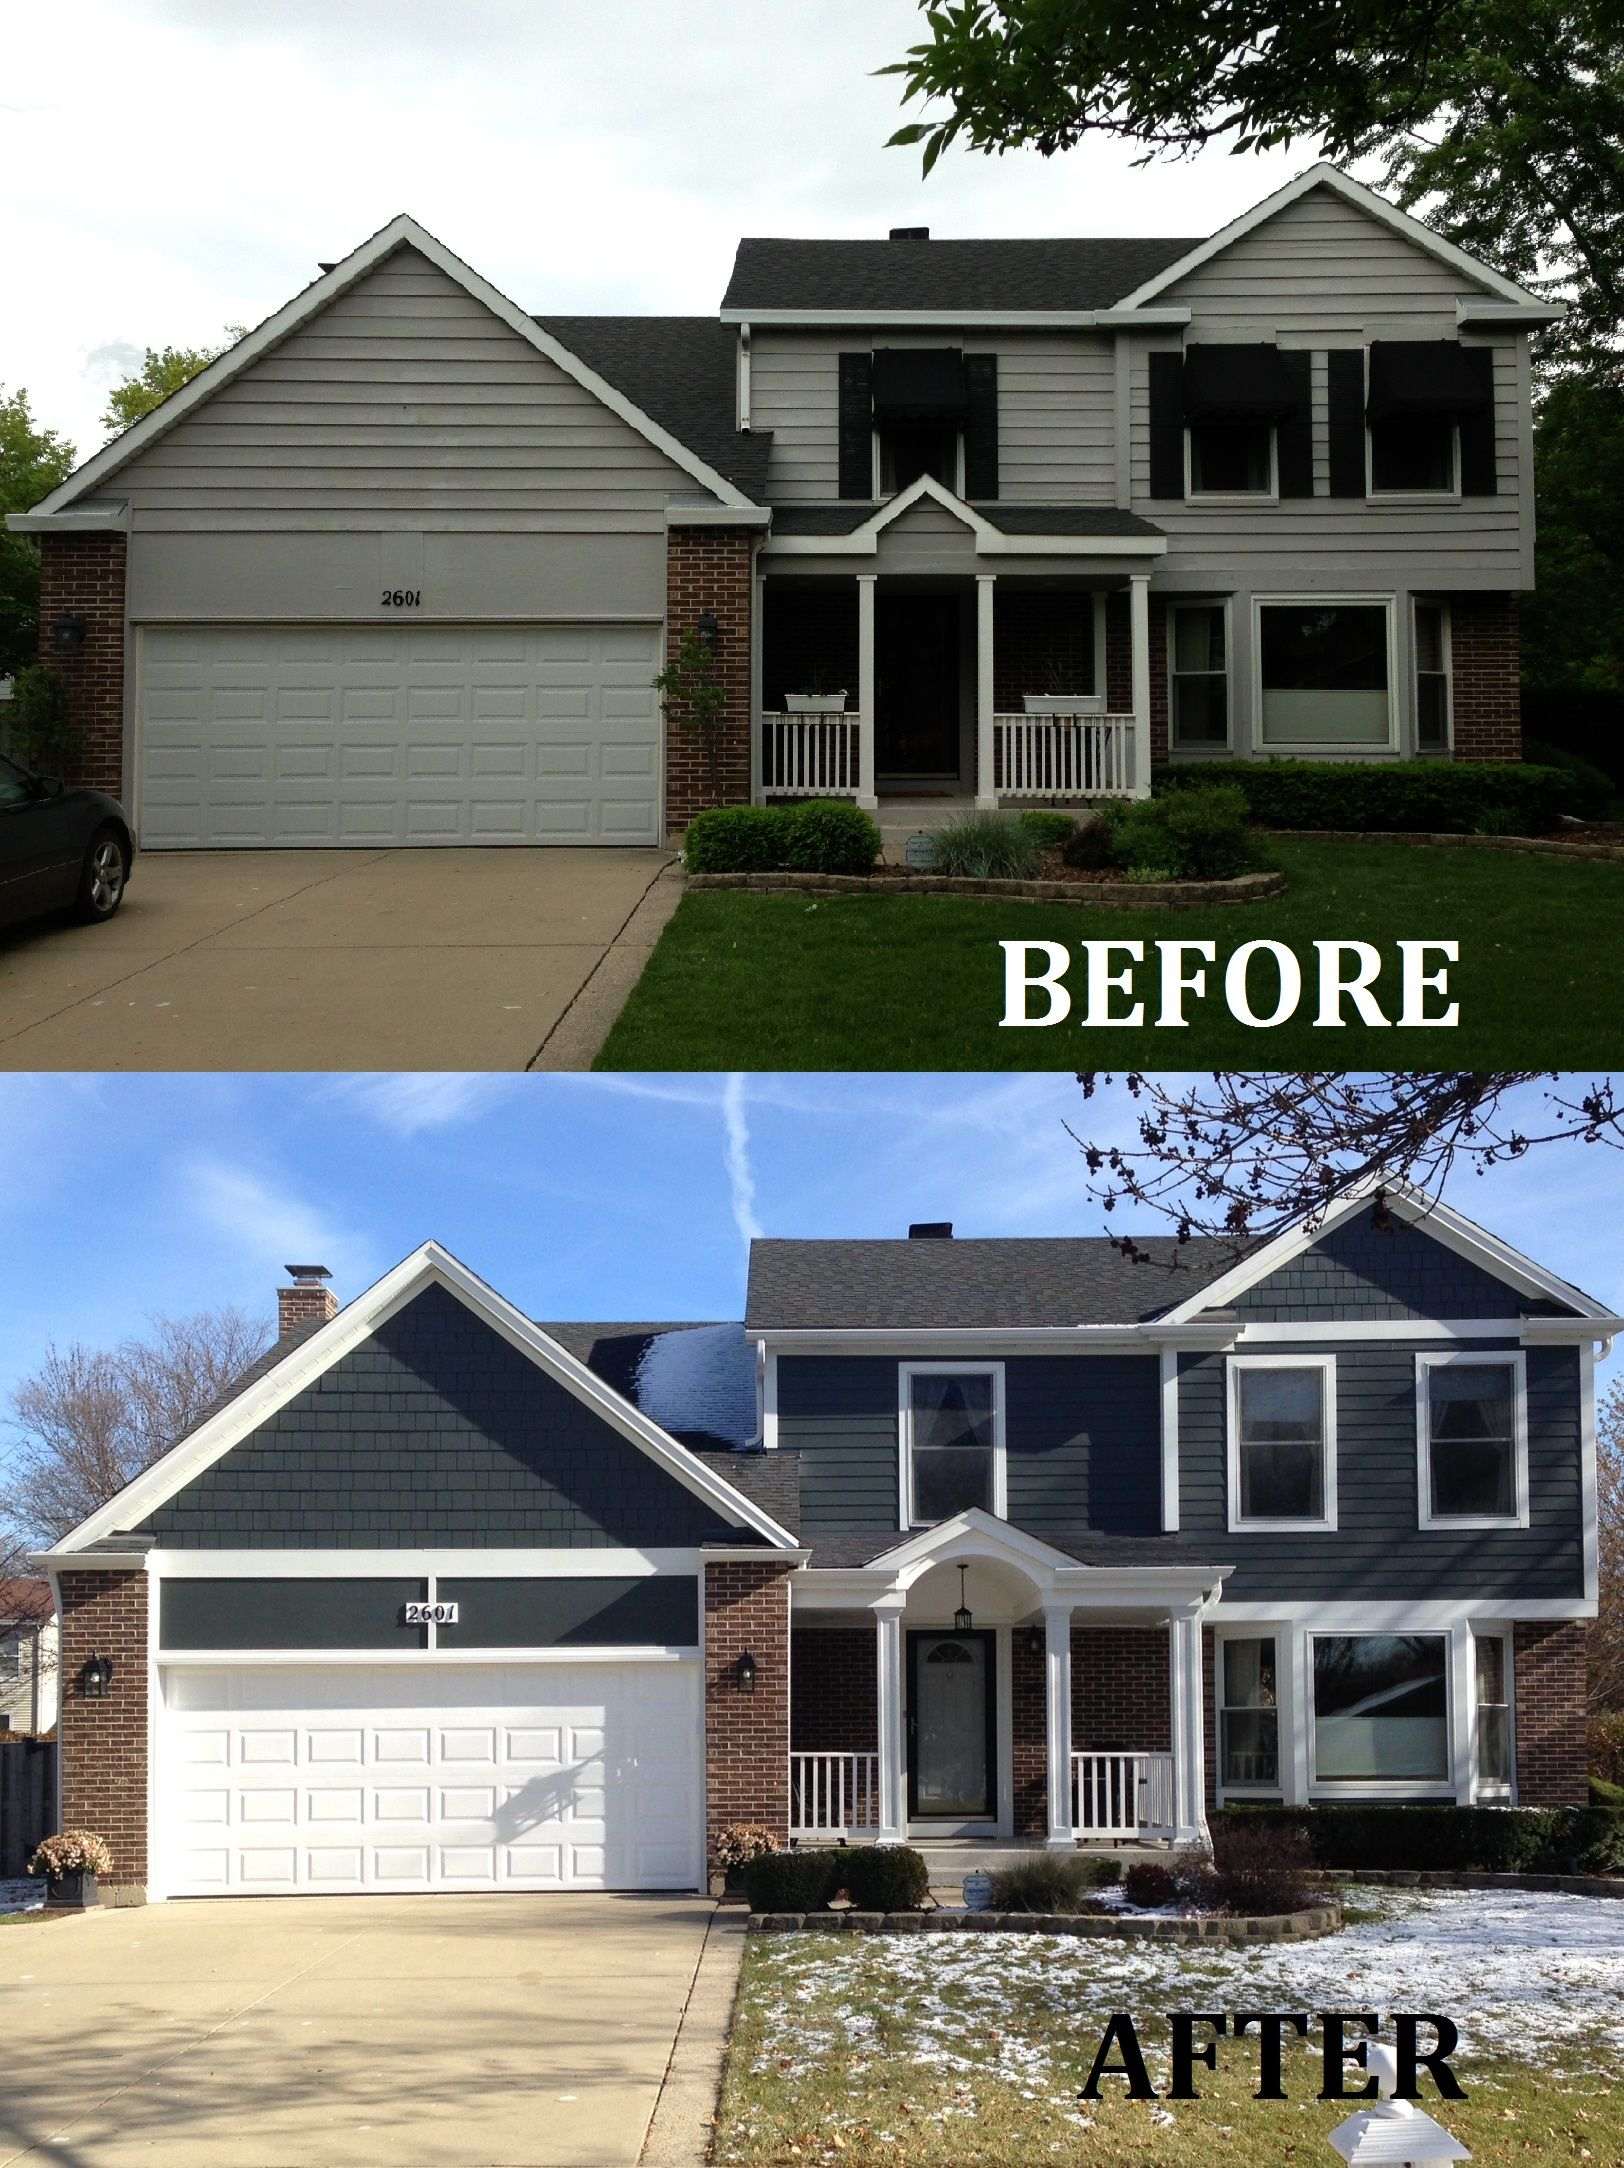 James Hardie Siding And Porch Resdesign Arlington Heights Red Brick House Exterior Brick Exterior House Brick House Exterior Colors